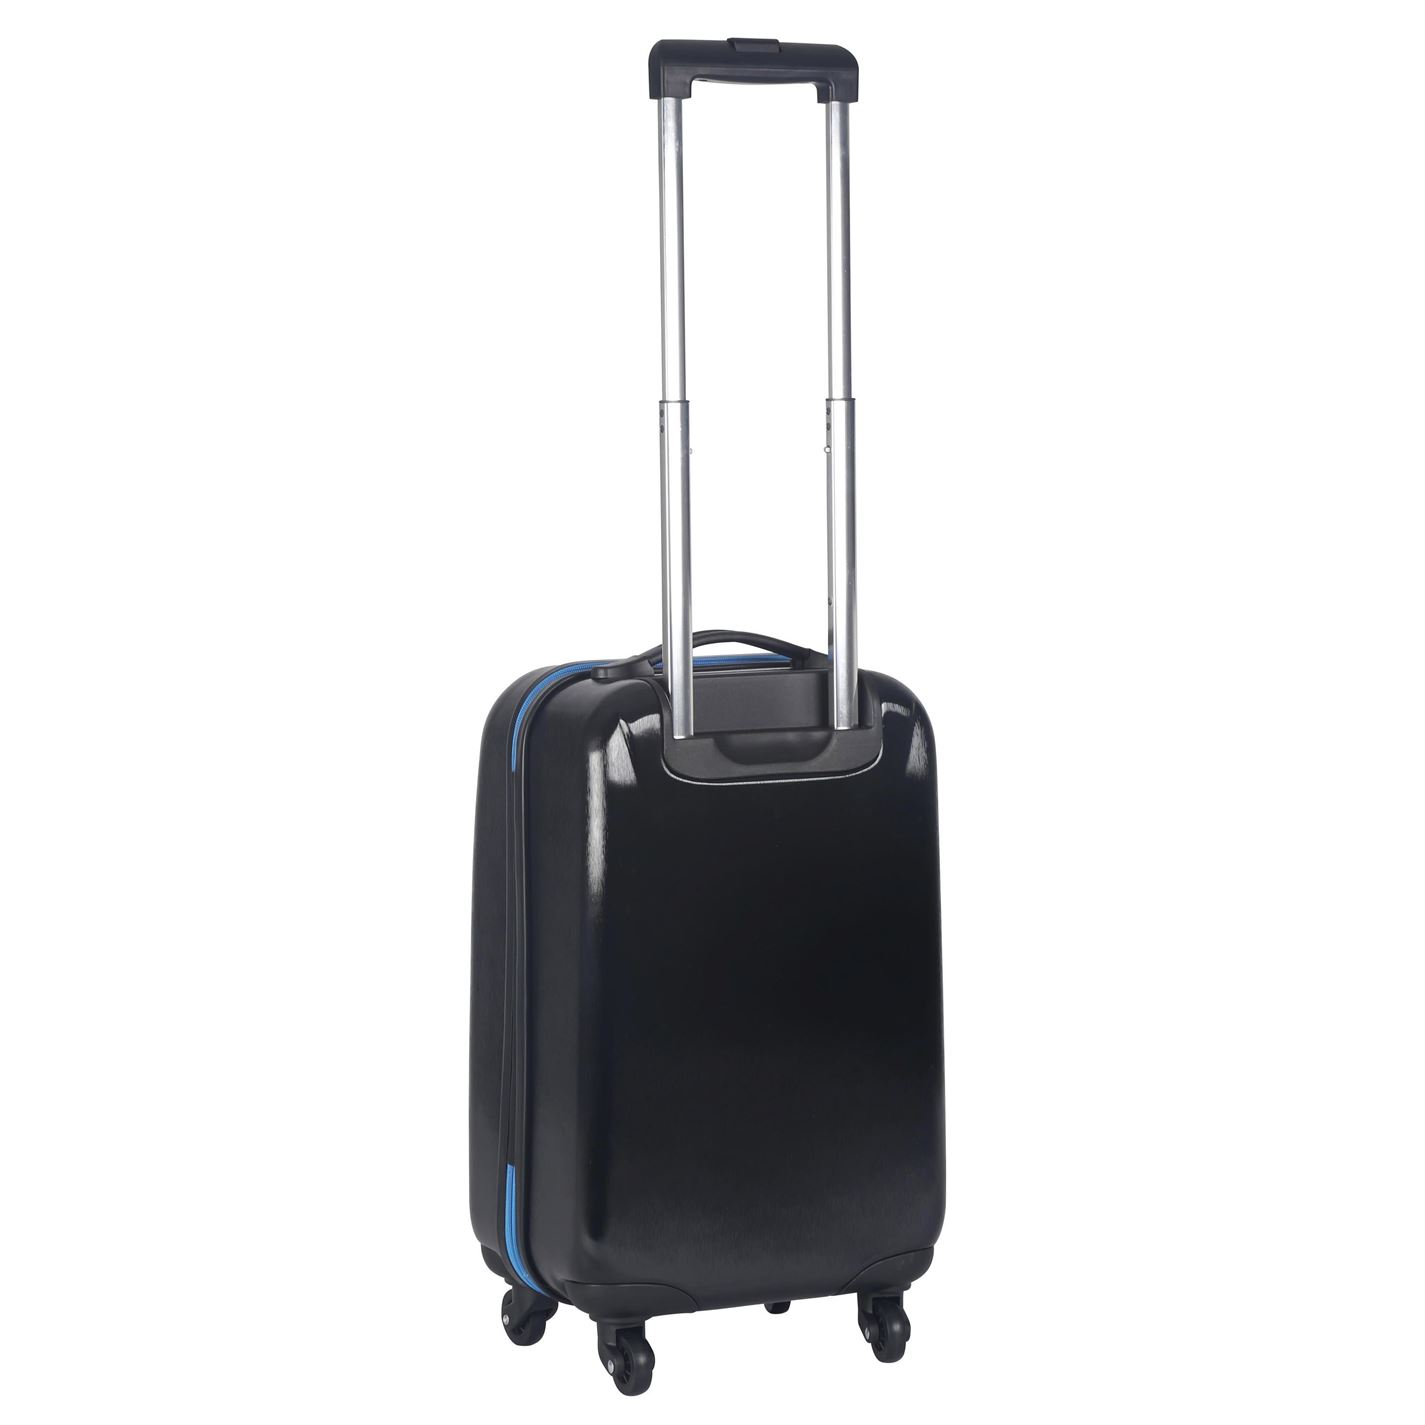 3e21d9a9116 NUFC Hard Suitcase Football Case Wheeled Travel Trolley Luggage Bag ...